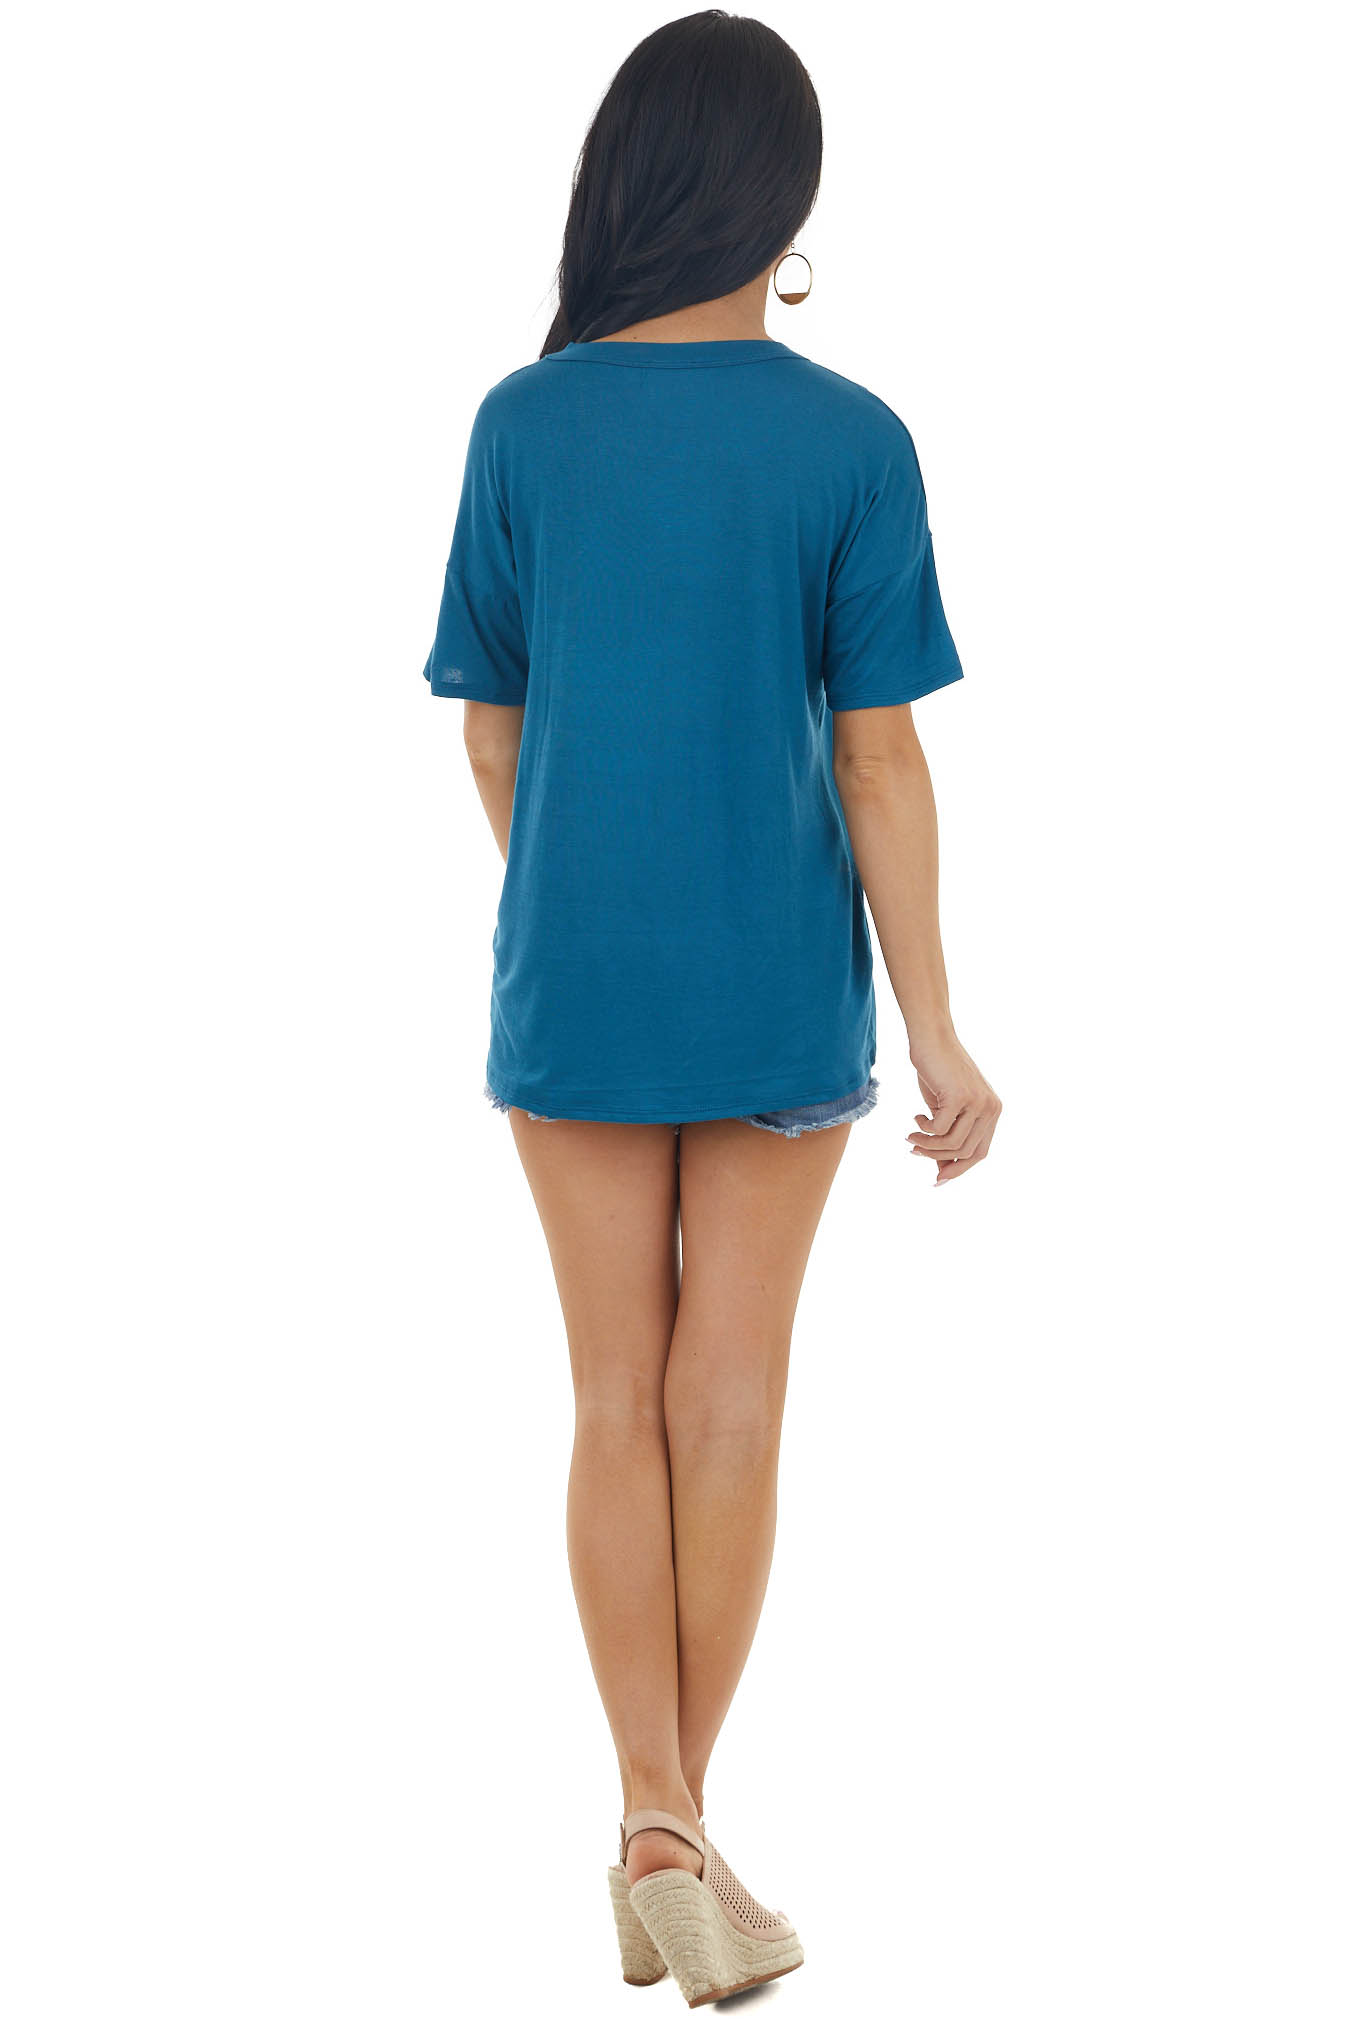 Dark Ocean Blue Short Sleeve Knit Top with Caged Neckline